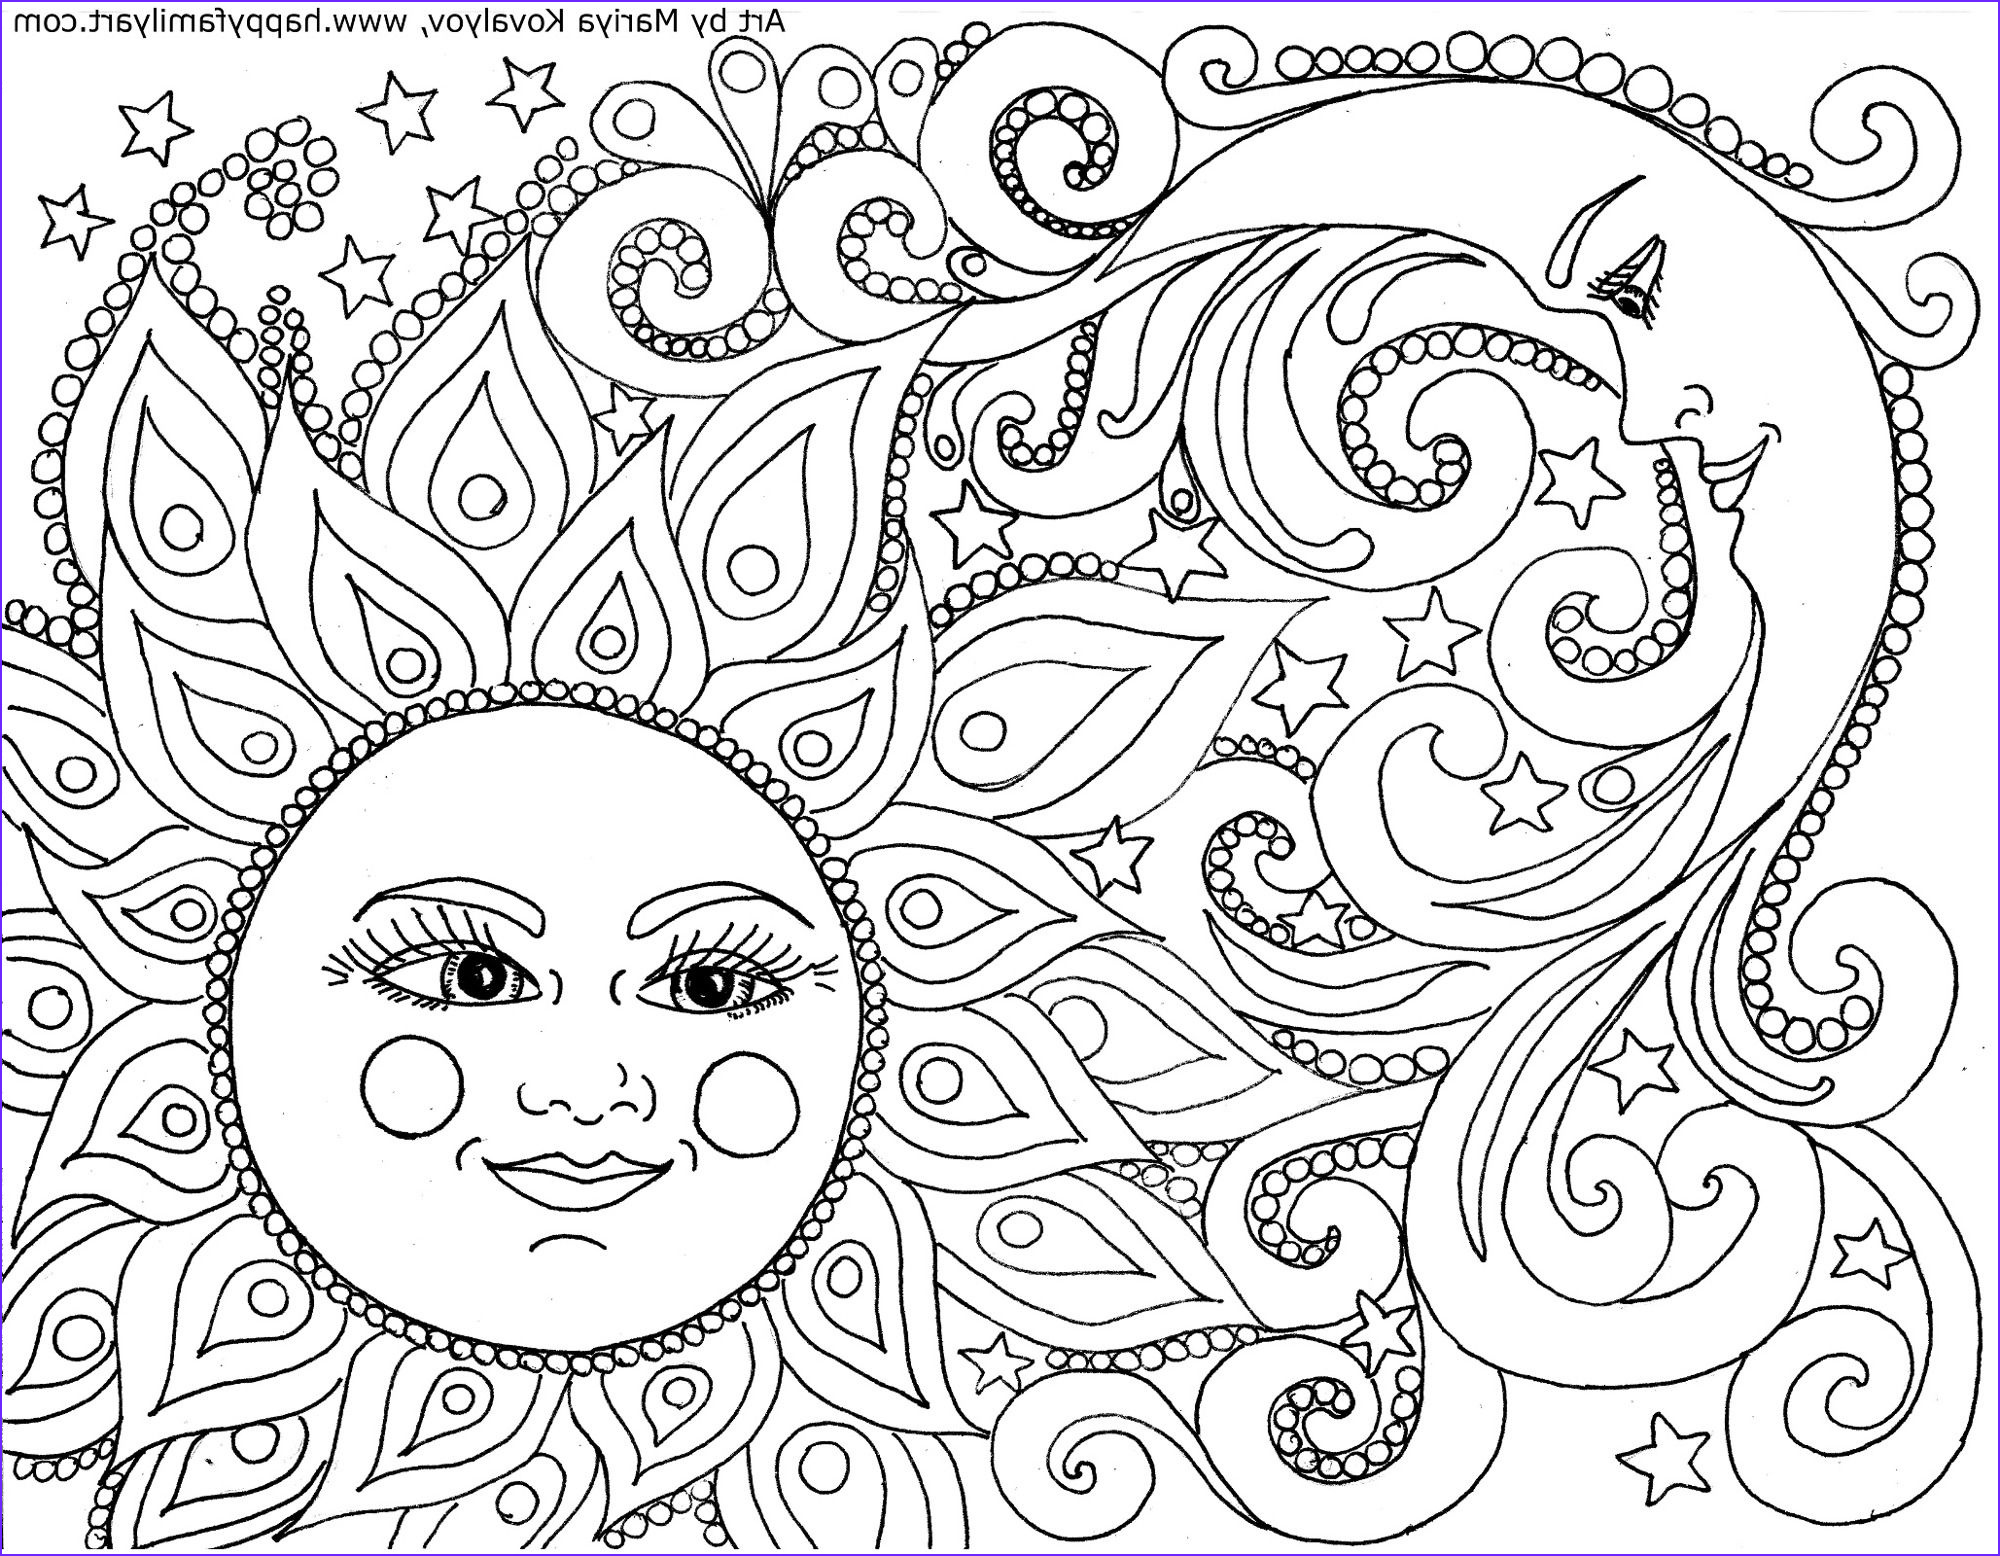 Easy Adult Coloring Book Unique Stock Original And Fun Coloring Pages Your Craft